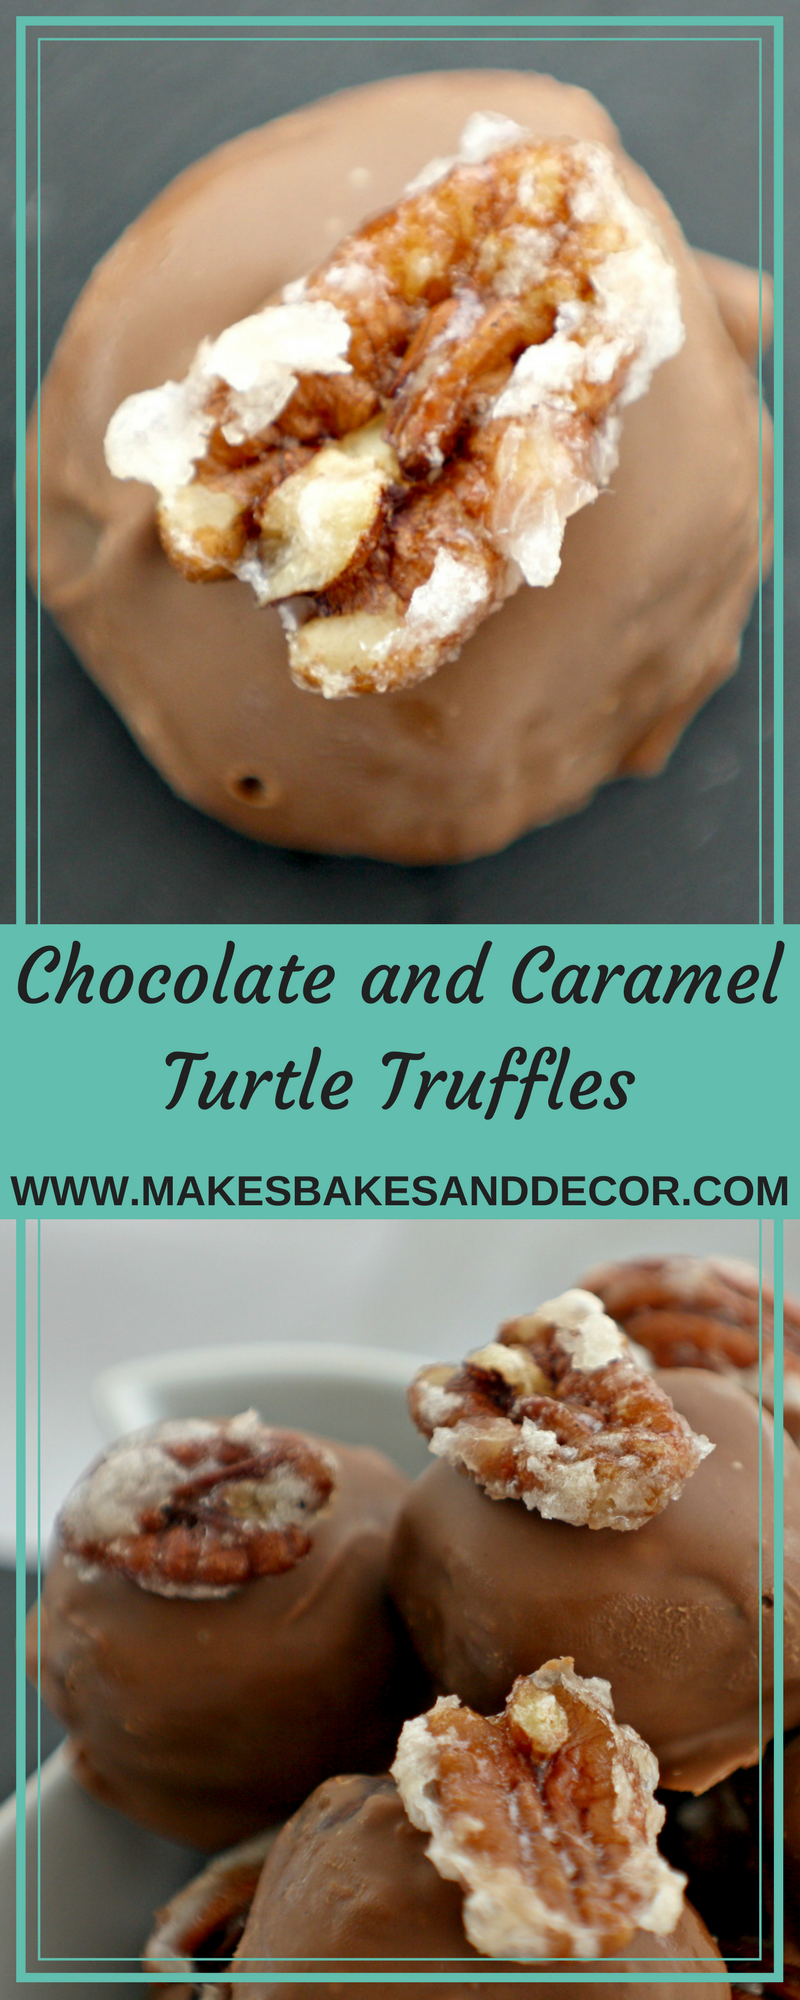 chocolate and caramel turtle truffles